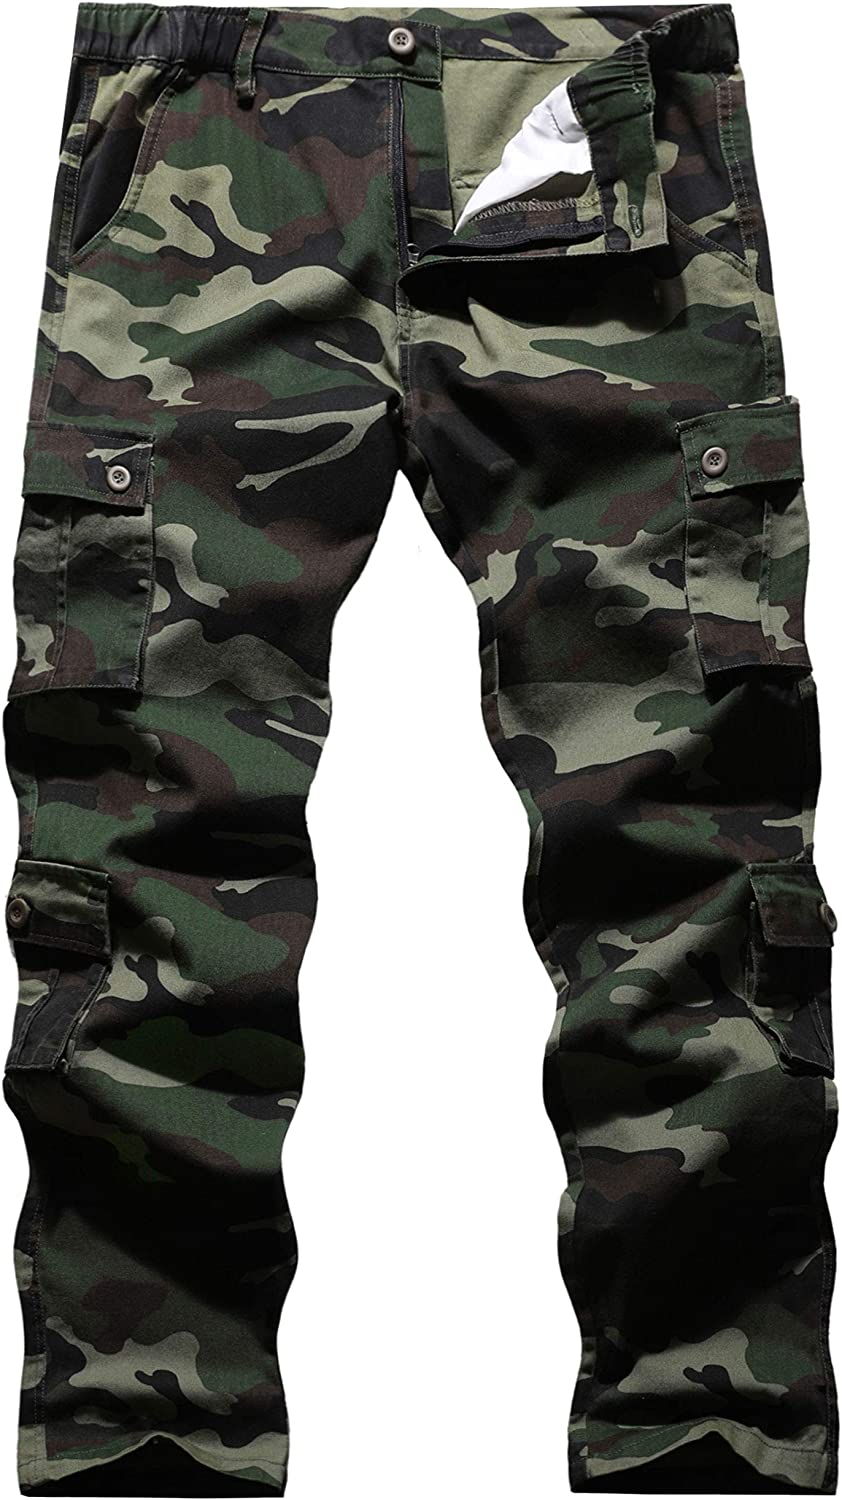 BOJIN Men's Cargo Pants Casual Military Army Camo Relaxed Fit Cotton Combat Camouflage Cargo Work Pants with 8 Pockets